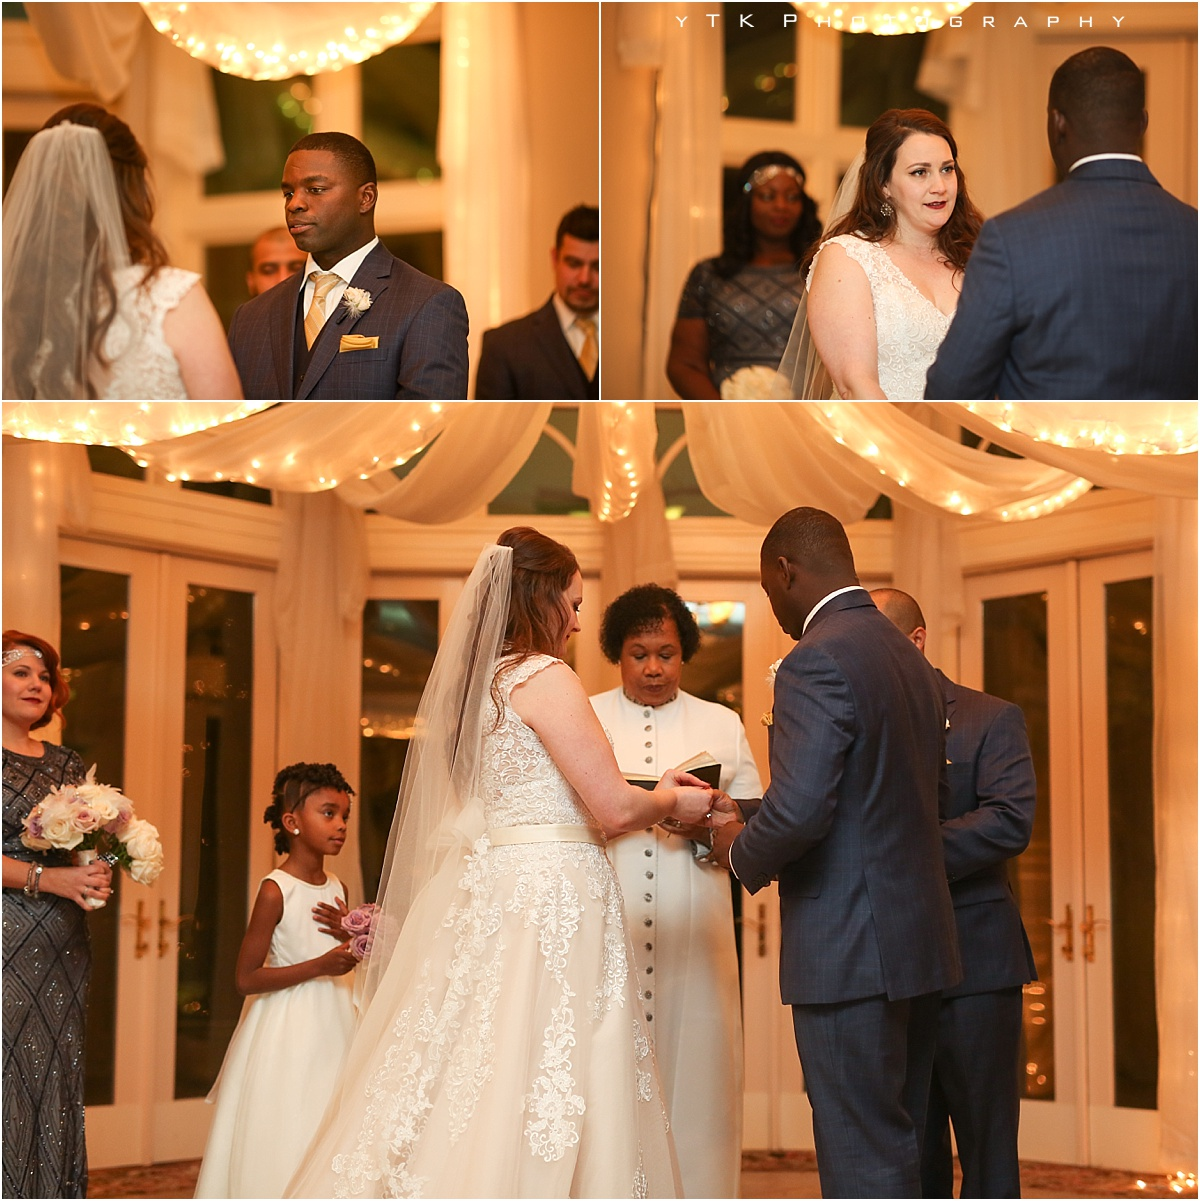 birch_hill_wedding_0032